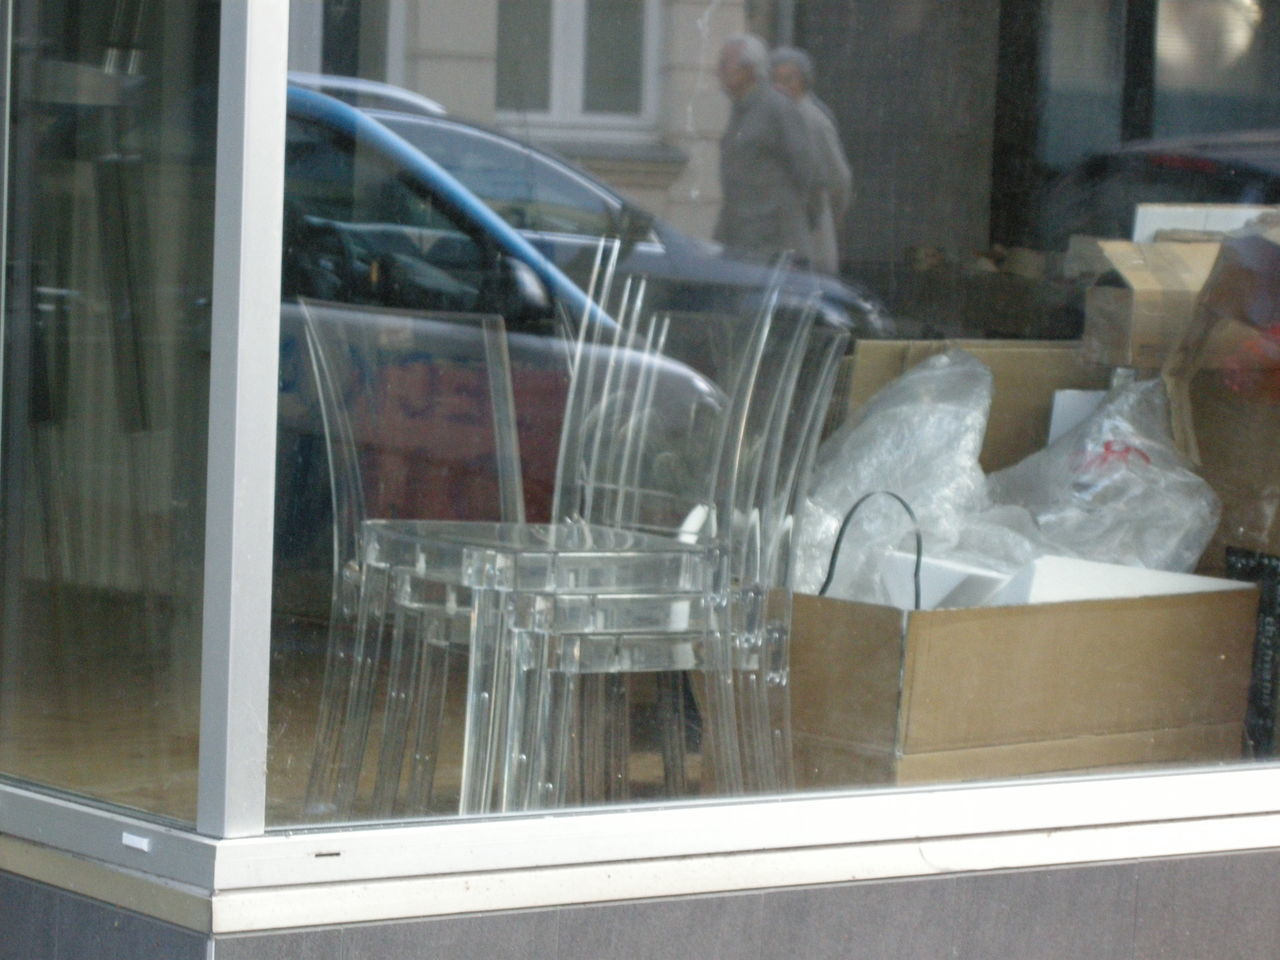 glass - material, transparent, window, reflection, transportation, real people, day, outdoors, one person, architecture, building exterior, close-up, people